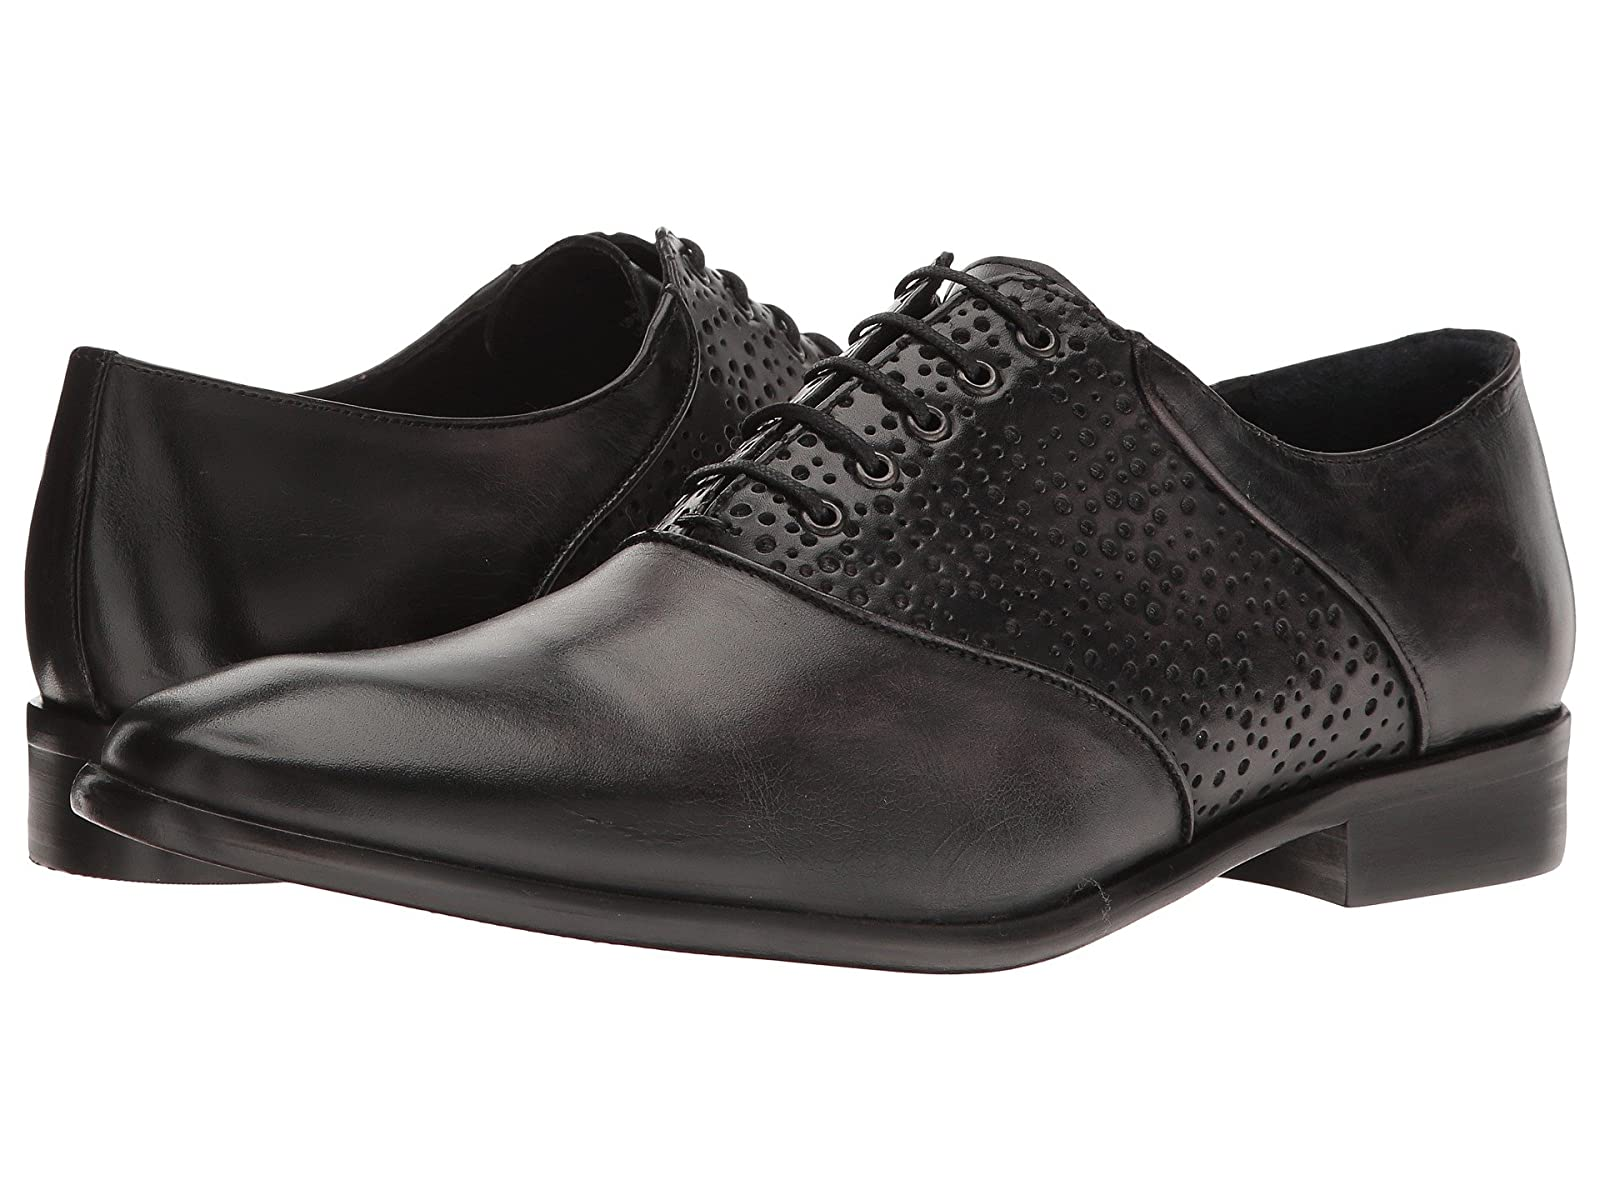 Messico MunoCheap and distinctive eye-catching shoes